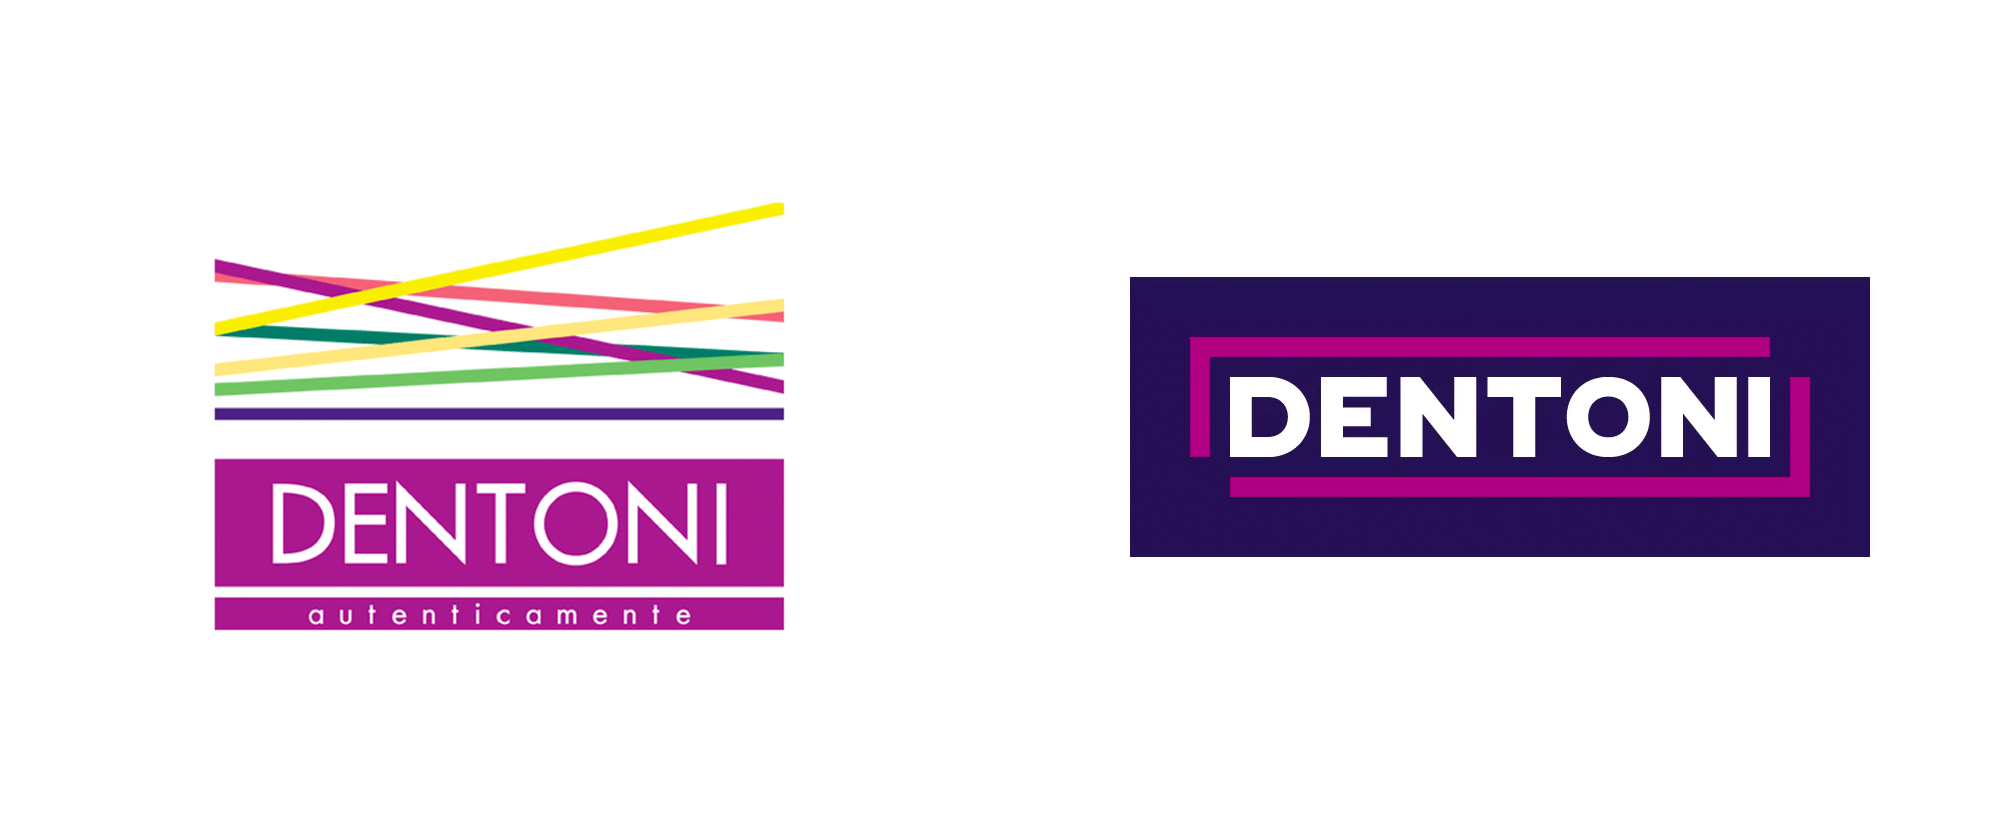 New Logo and Identity for Dentoni by Superklas